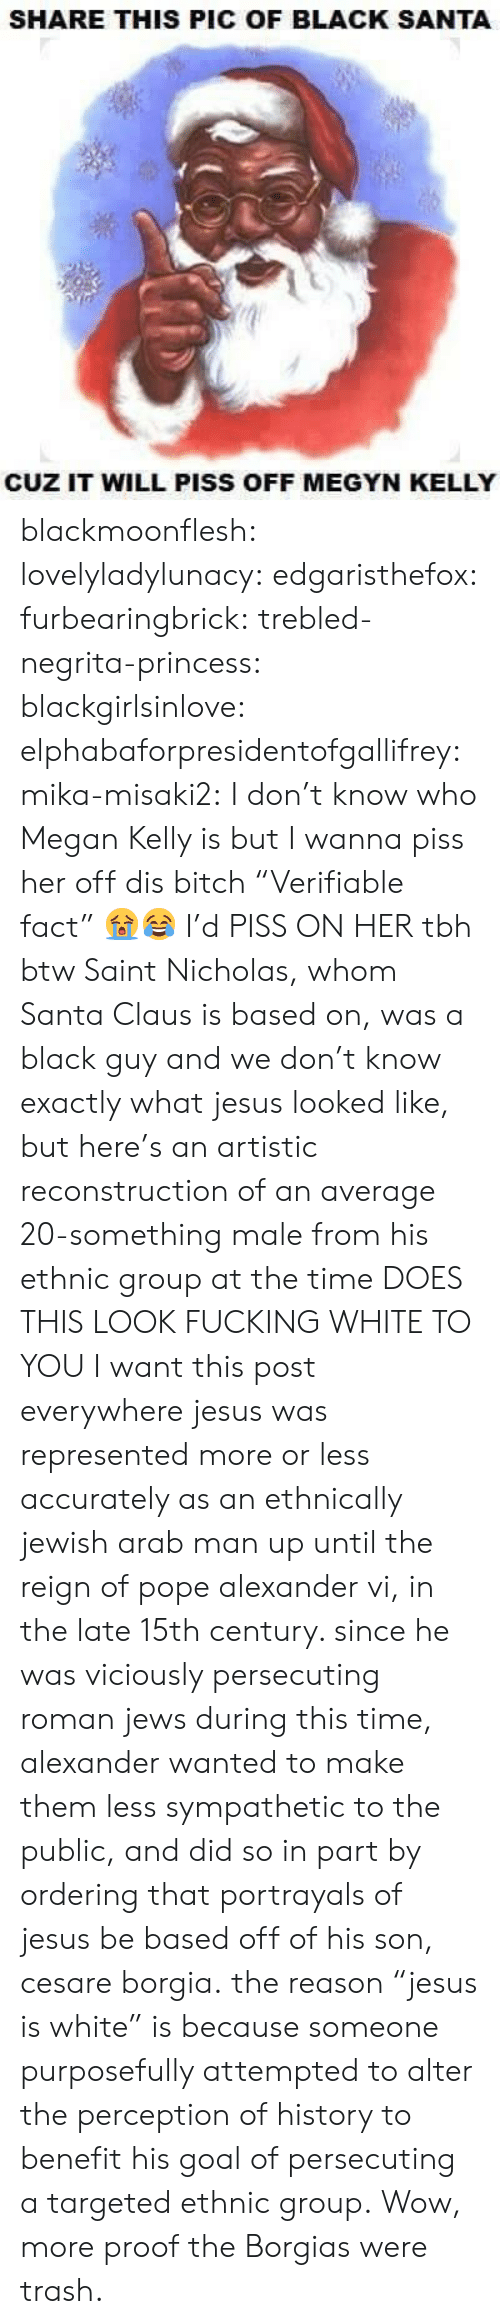 "Santa Claus: SHARE THIS PIC OF BLACK SANTA  CUZ IT WILL PISS OFF MEGYN KELLY blackmoonflesh: lovelyladylunacy:  edgaristhefox:  furbearingbrick:  trebled-negrita-princess:  blackgirlsinlove:  elphabaforpresidentofgallifrey:  mika-misaki2:  I don't know who Megan Kelly is but I wanna piss her off  dis bitch   ""Verifiable fact"" 😭😂  I'd PISS ON HER tbh  btw Saint Nicholas, whom Santa Claus is based on, was a black guy and we don't know exactly what jesus looked like, but here's an artistic reconstruction of an average 20-something male from his ethnic group at the time DOES THIS LOOK FUCKING WHITE TO YOU  I want this post everywhere  jesus was represented more or less accurately as an ethnically jewish arab man up until the reign of pope alexander vi, in the late 15th century. since he was viciously persecuting roman jews during this time, alexander wanted to make them less sympathetic to the public, and did so in part by ordering that portrayals of jesus be based off of his son, cesare borgia. the reason ""jesus is white"" is because someone purposefully attempted to alter the perception of history to benefit his goal of persecuting a targeted ethnic group.  Wow, more proof the Borgias were trash."